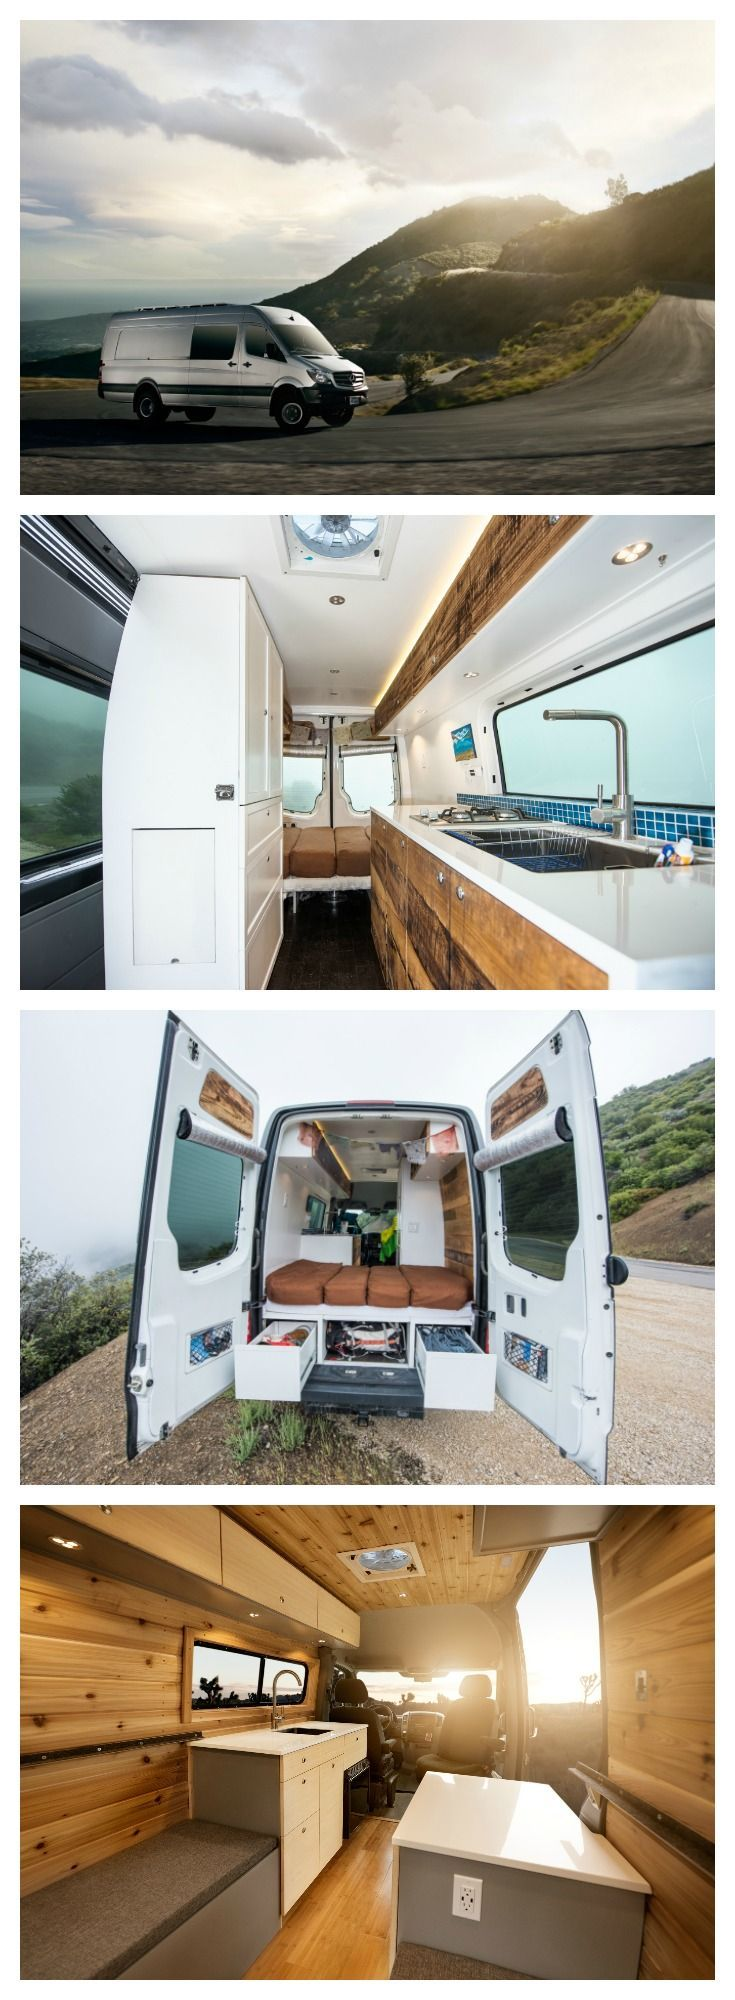 Camper Van Conversion: the best campers and custom builds of 2019 Camper Van Conversion: the best c